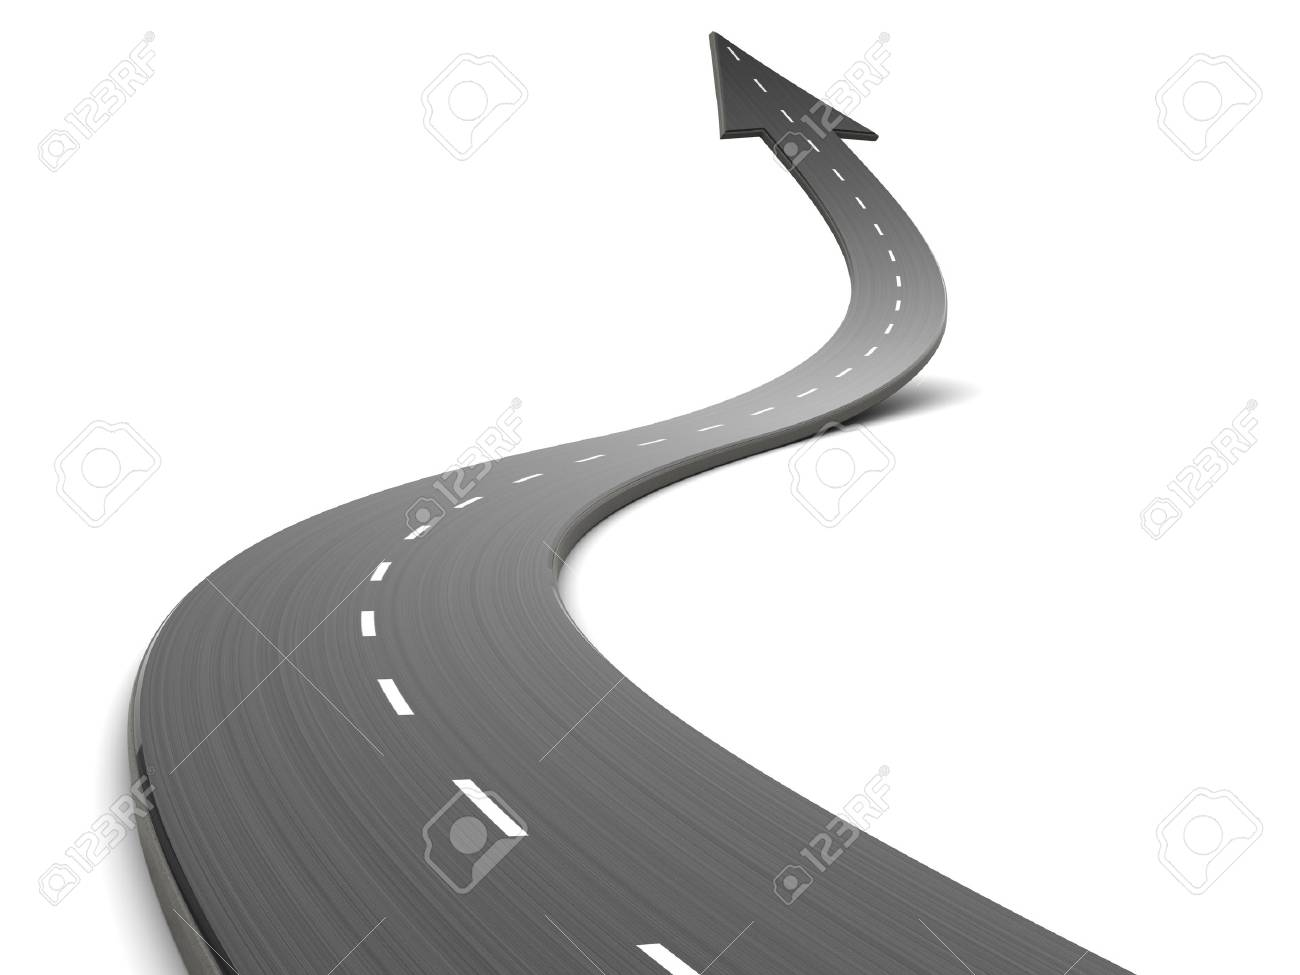 abstract 3d illustration of curved road forward with arrow - 45262408